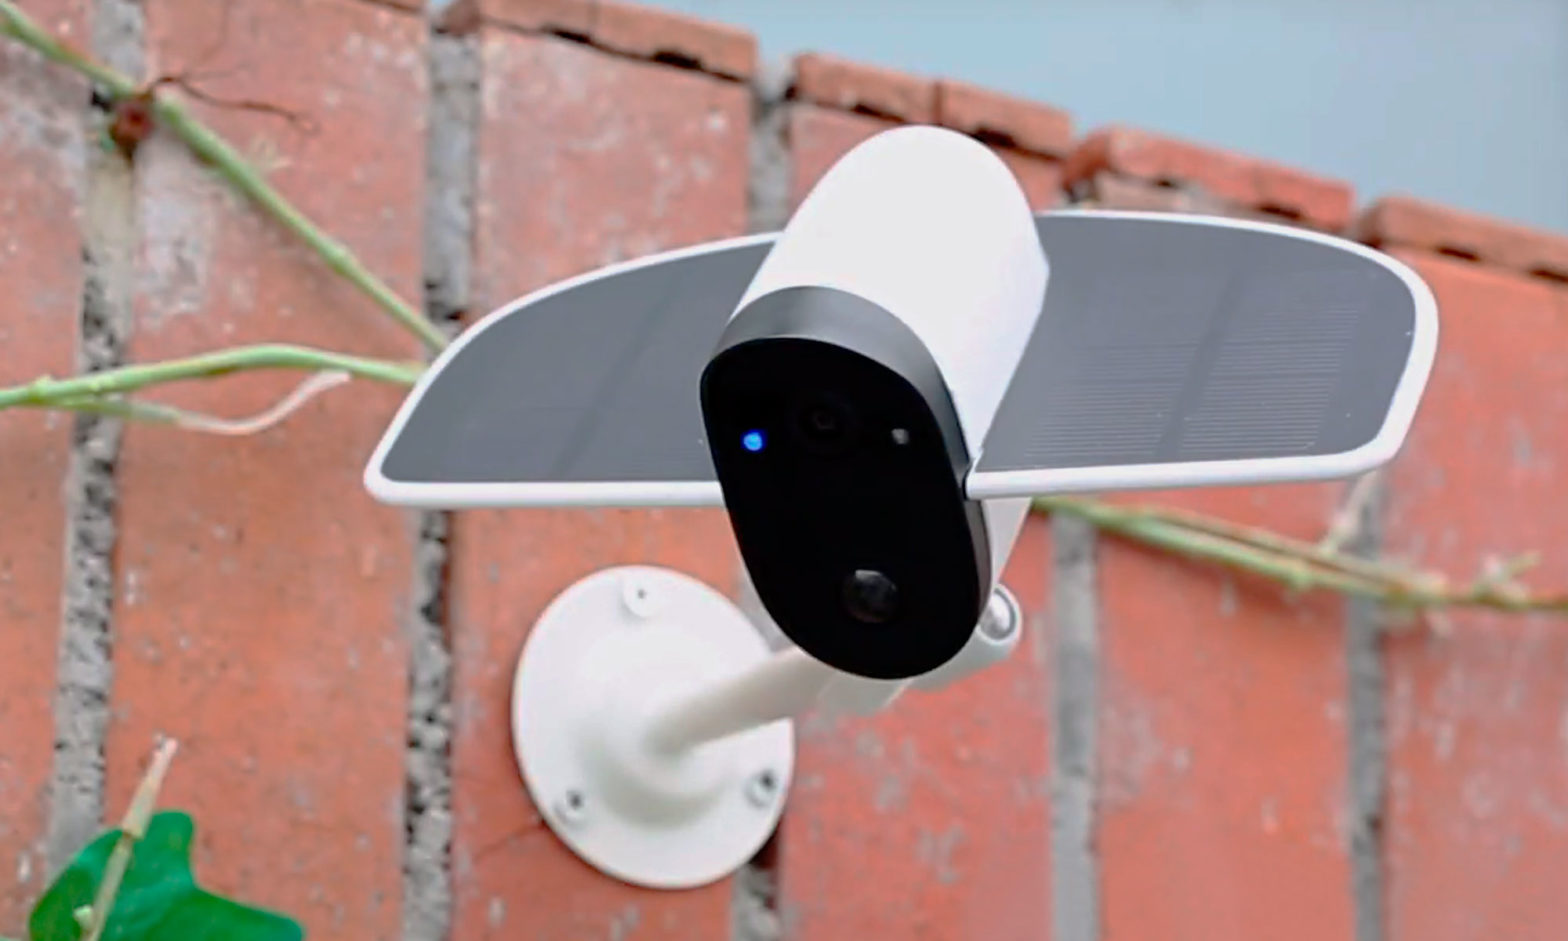 Soliom Bird S60 Solar Security Camera